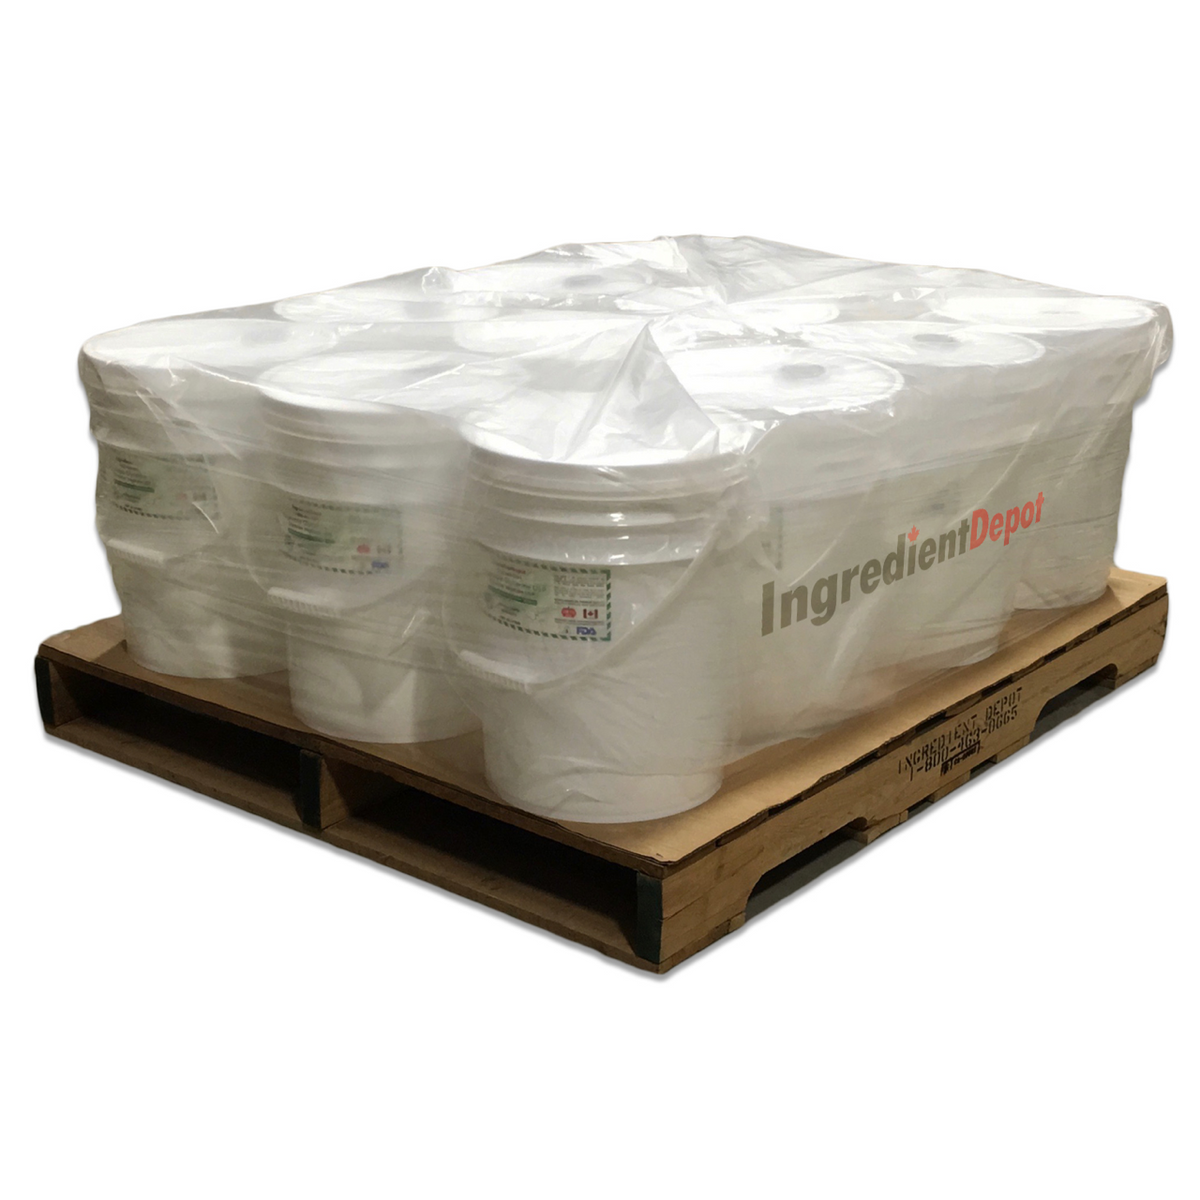 Vegetable Glycerin 99.7% USP 100% Natural | 12 x 20 litres on a Pallet